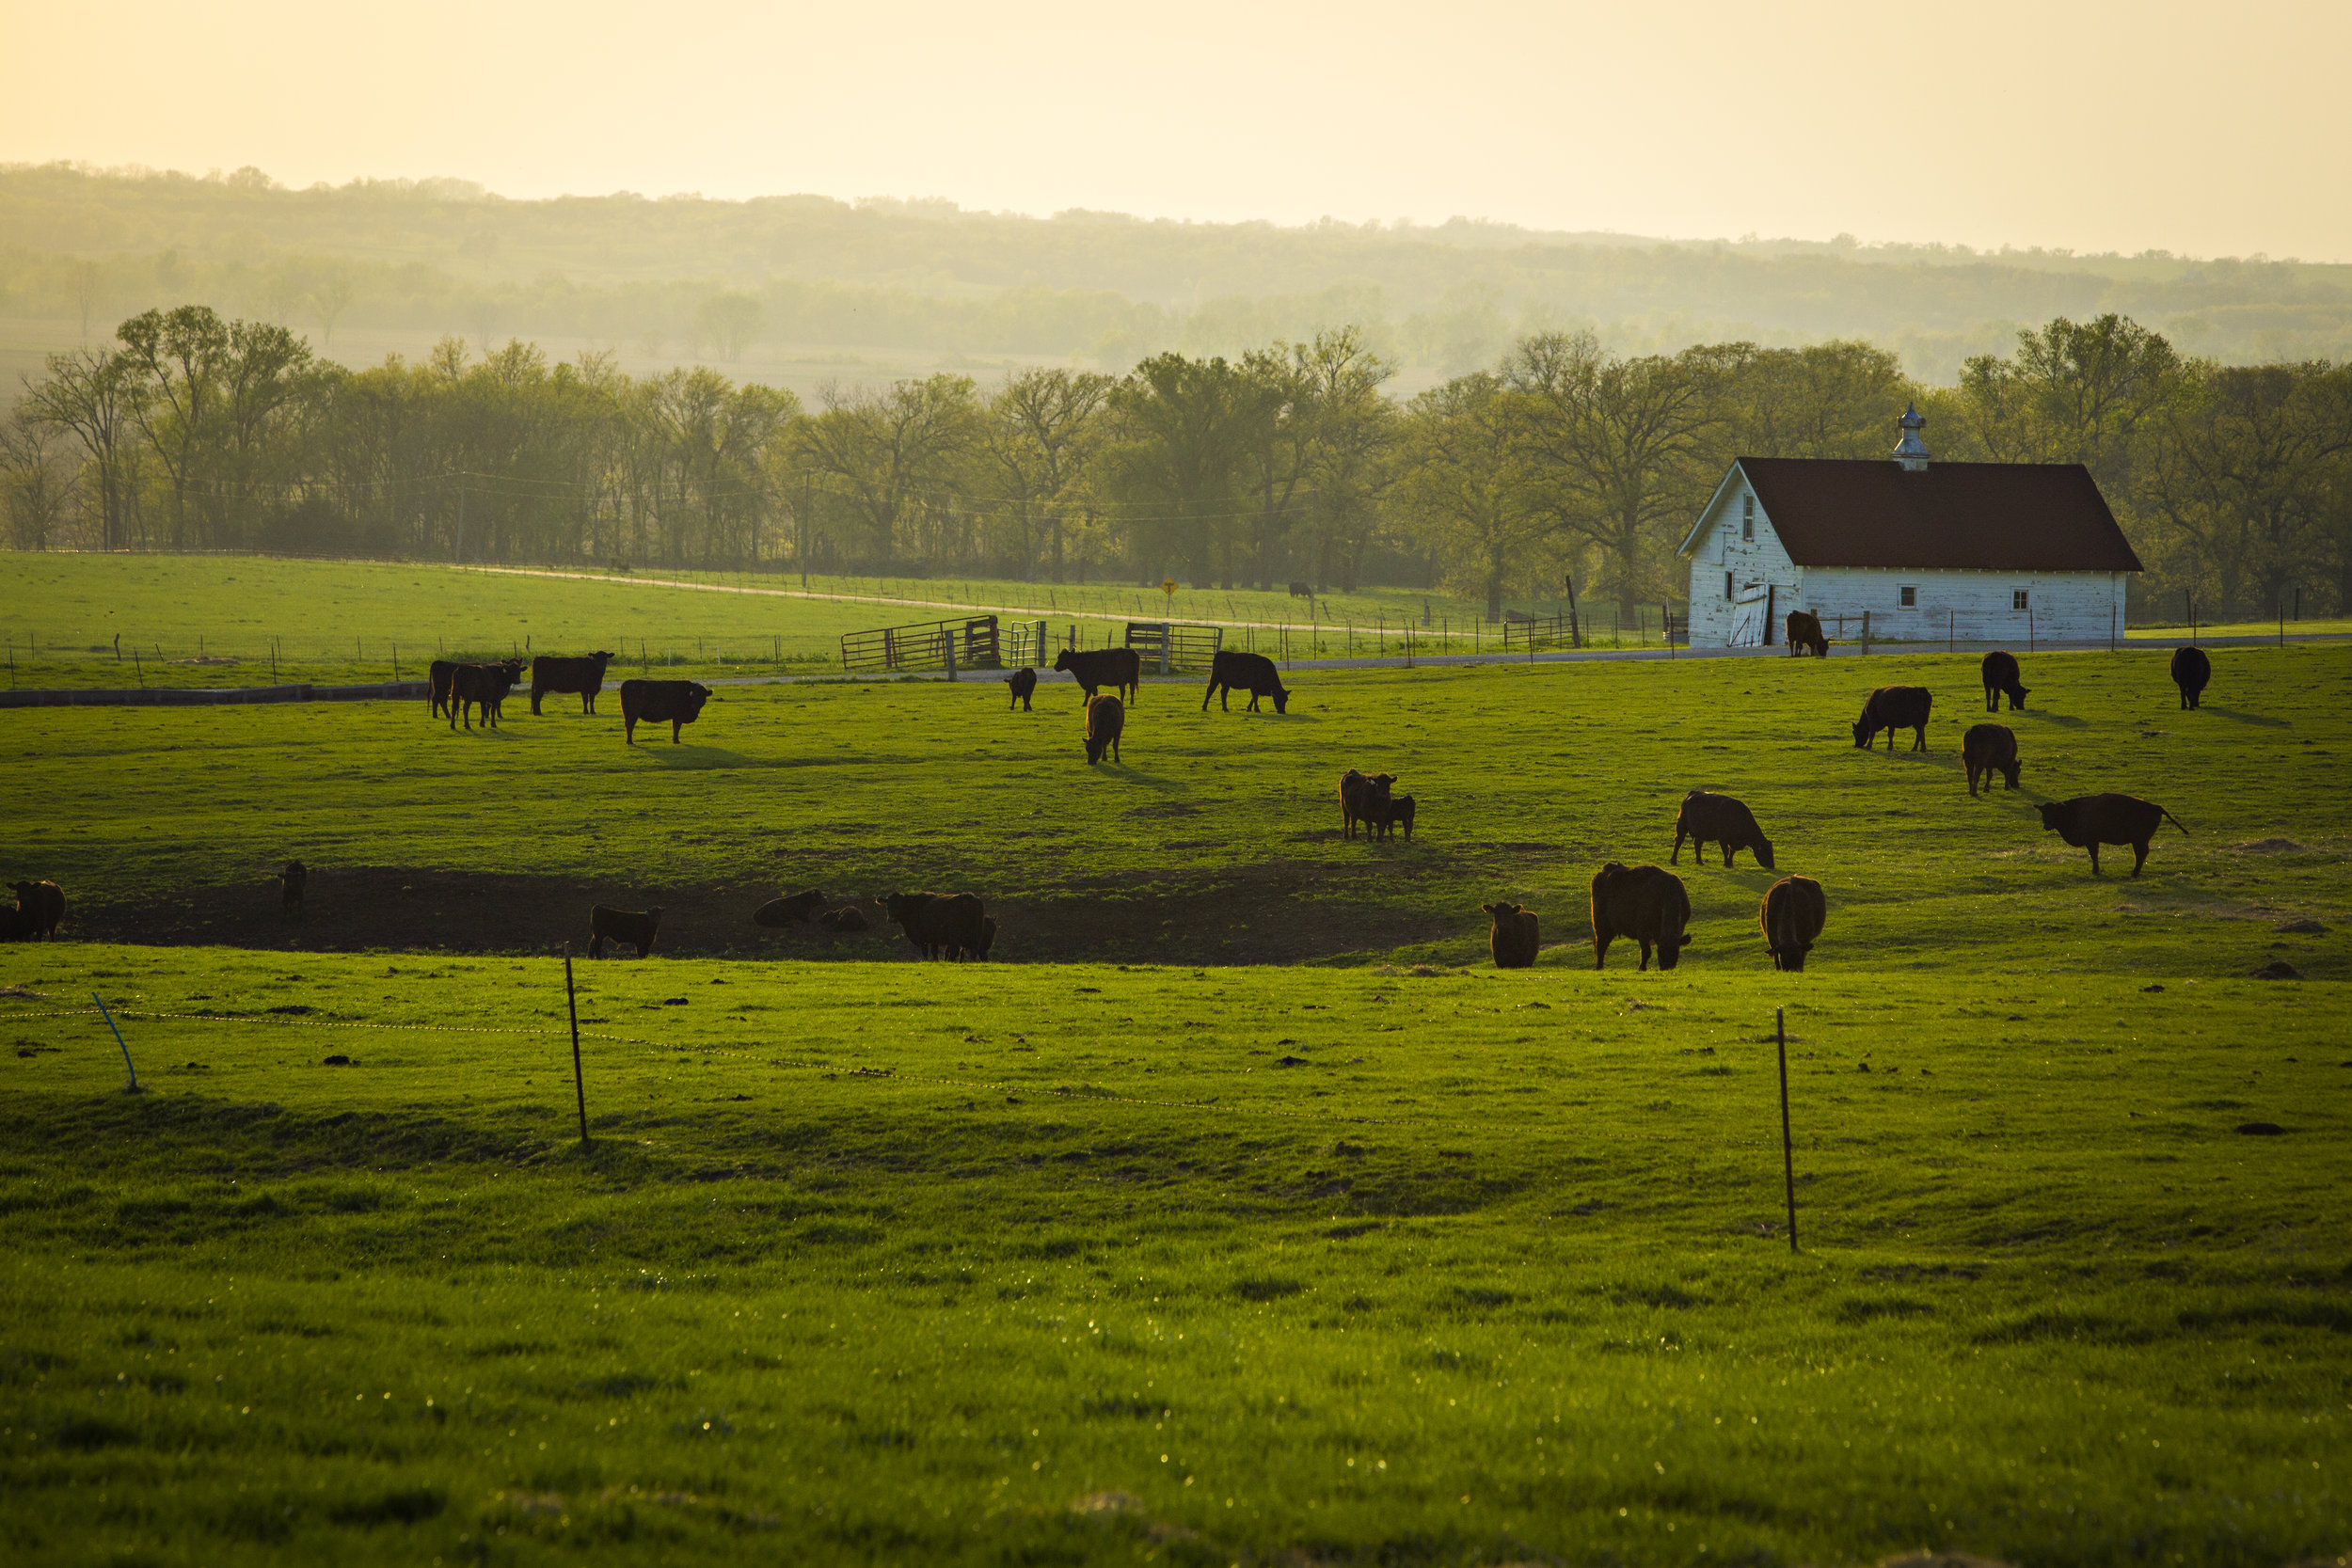 Image by University of Missouri College of Agriculture, Food and Natural Resources.  Image is of cattle grazing in field on University of Missouri Thomspon Research Center.